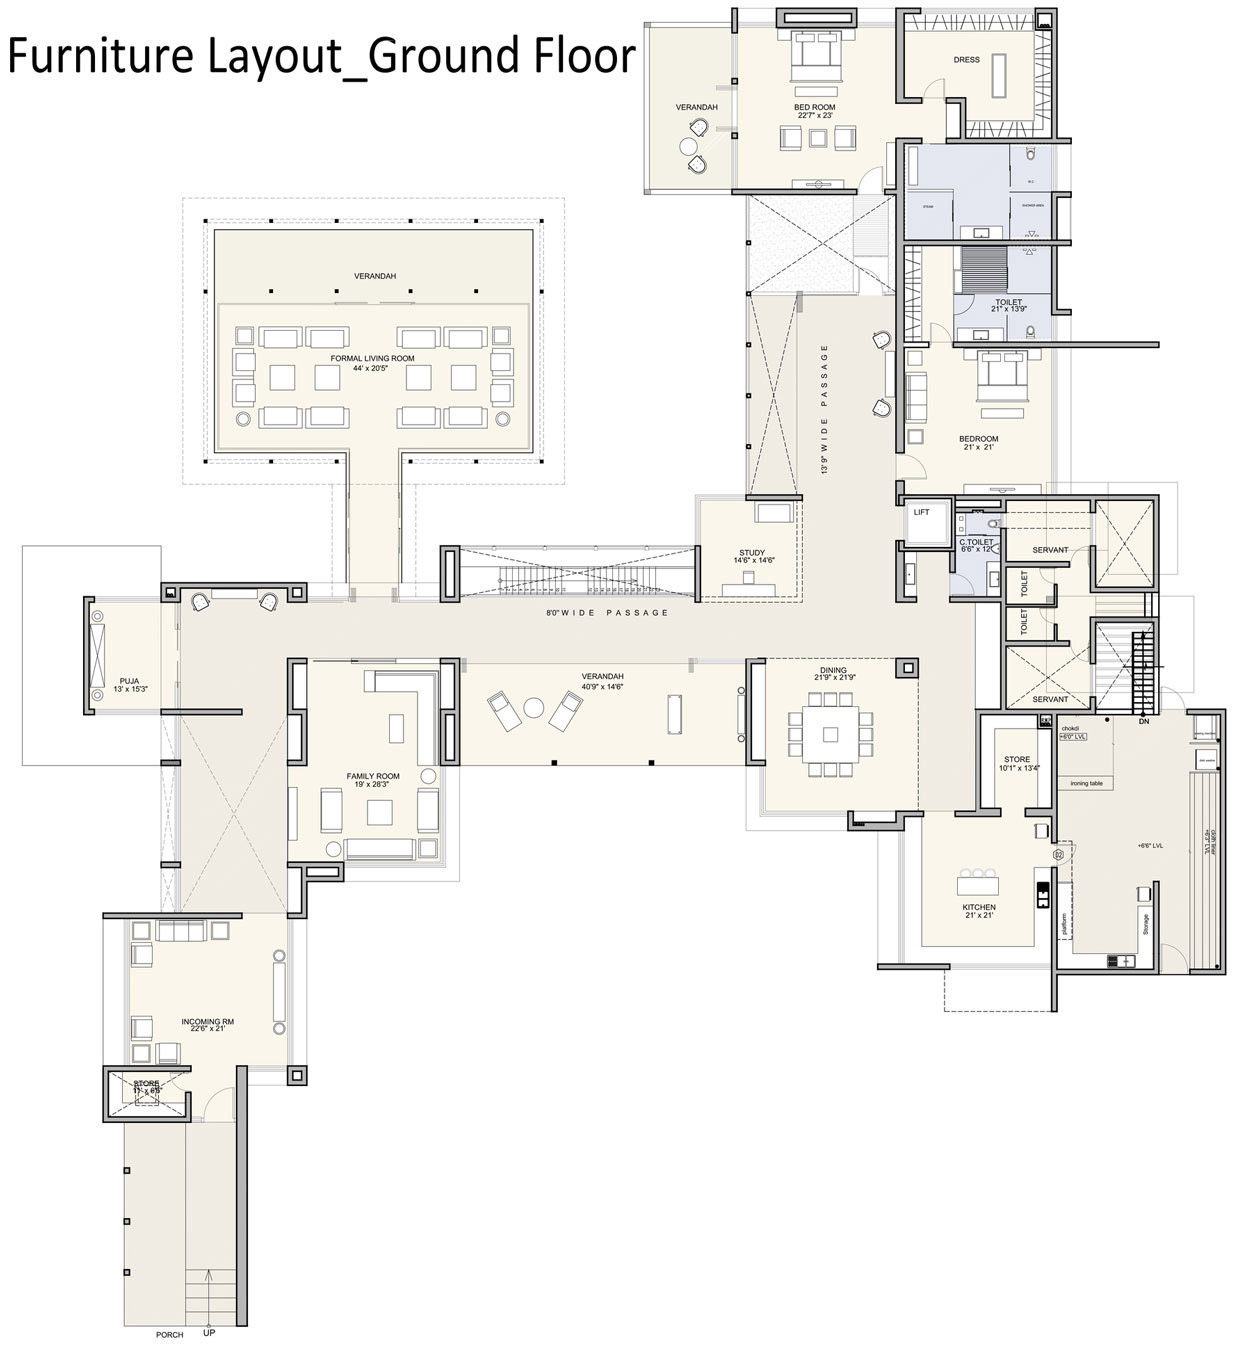 Ground Floor Furniture Layout, Contemporary House in Ahmedabad, India